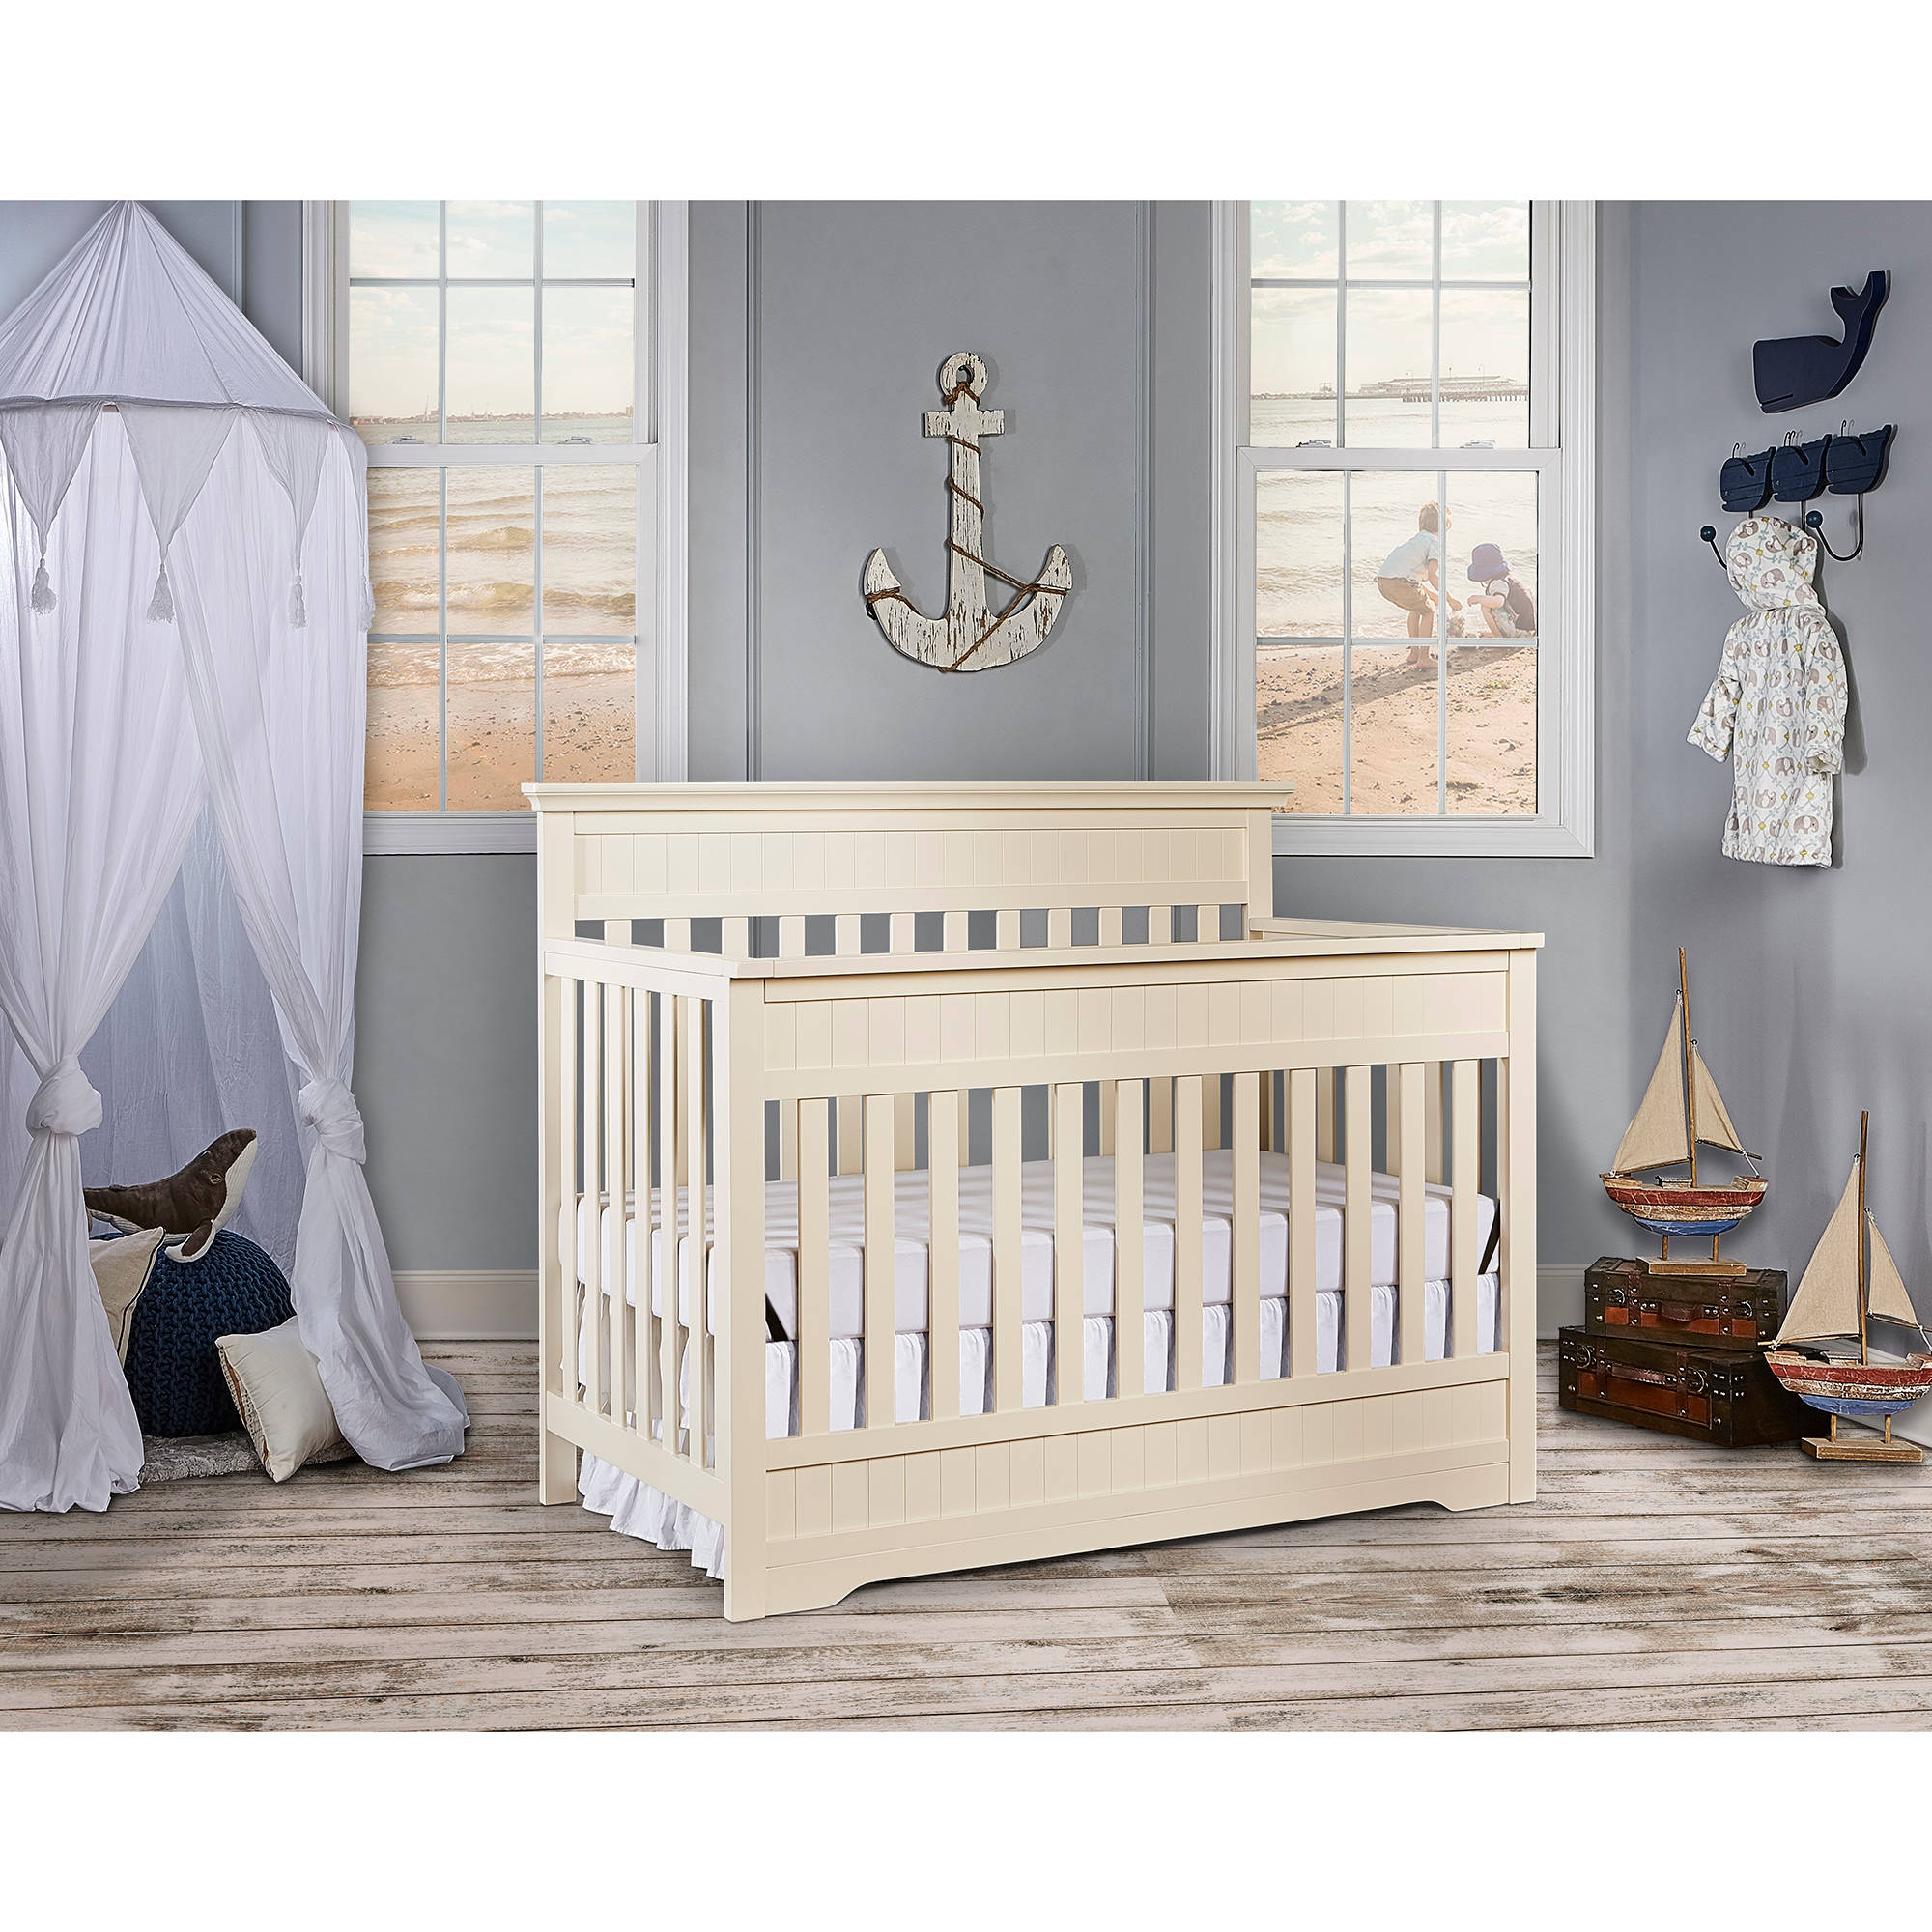 cribs grey crib dream furniture awesome oxford s in of baby lane convertible dark gray